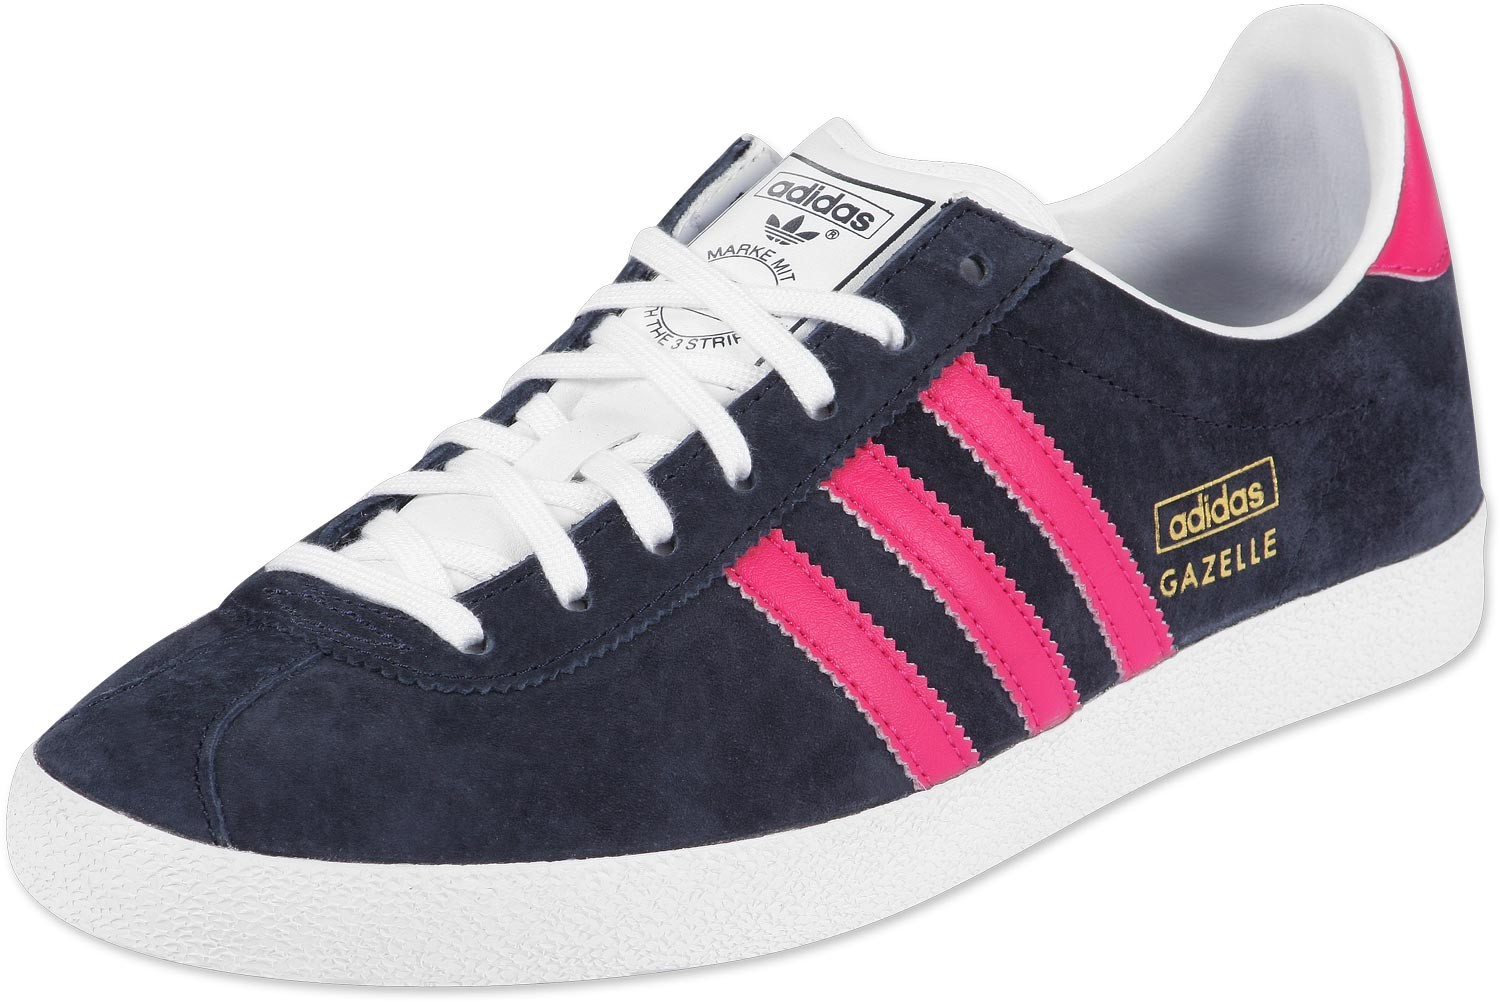 adidas gazelle bleu marine et rose pas cher. Black Bedroom Furniture Sets. Home Design Ideas